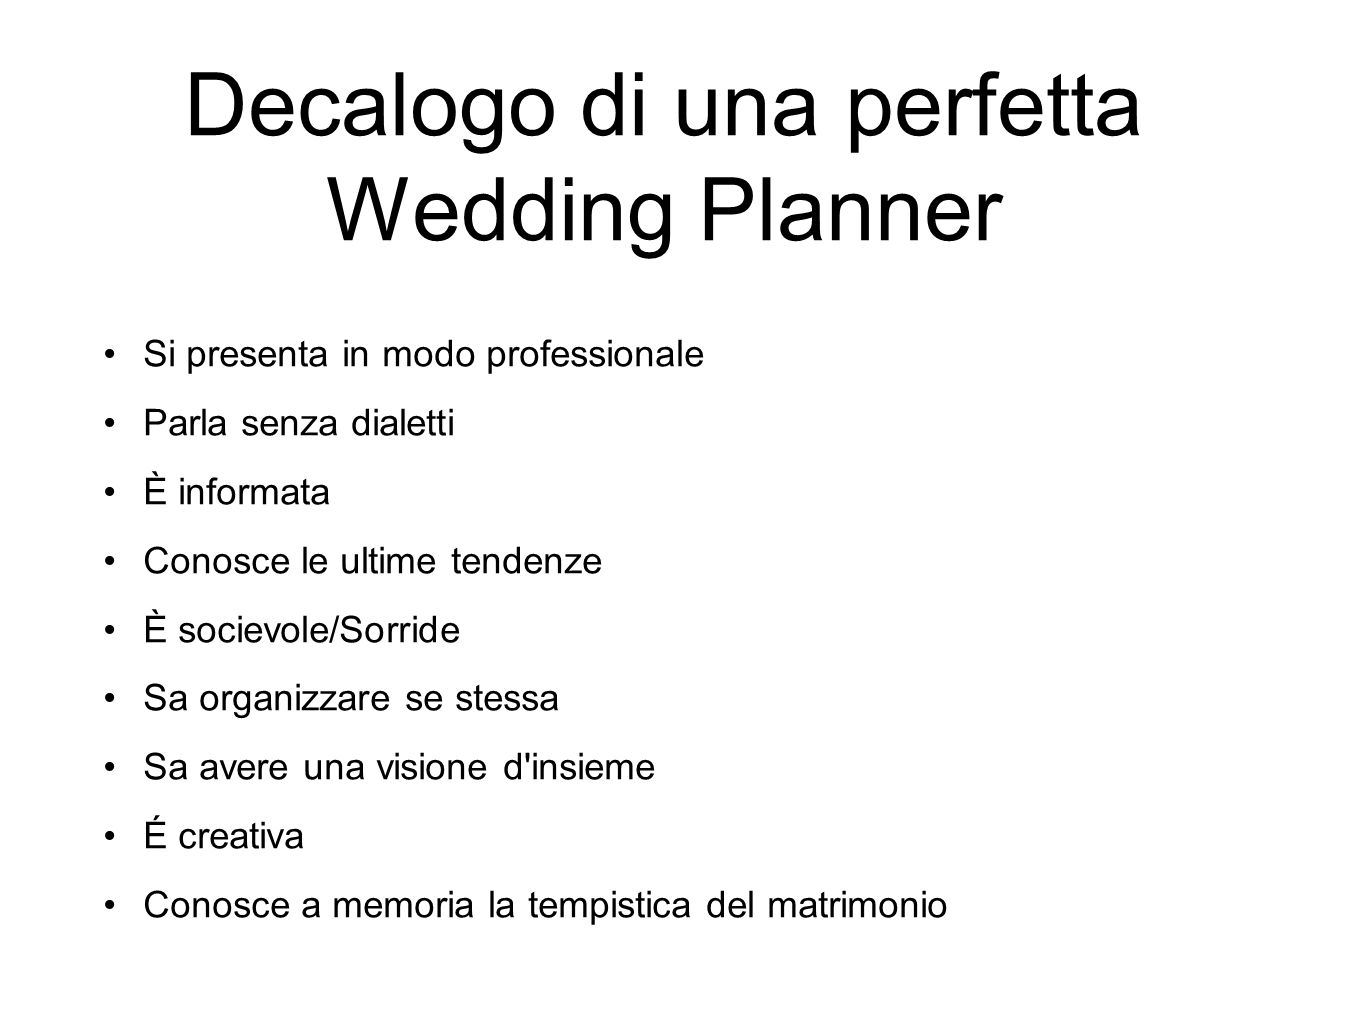 Decalogo di una perfetta Wedding Planner